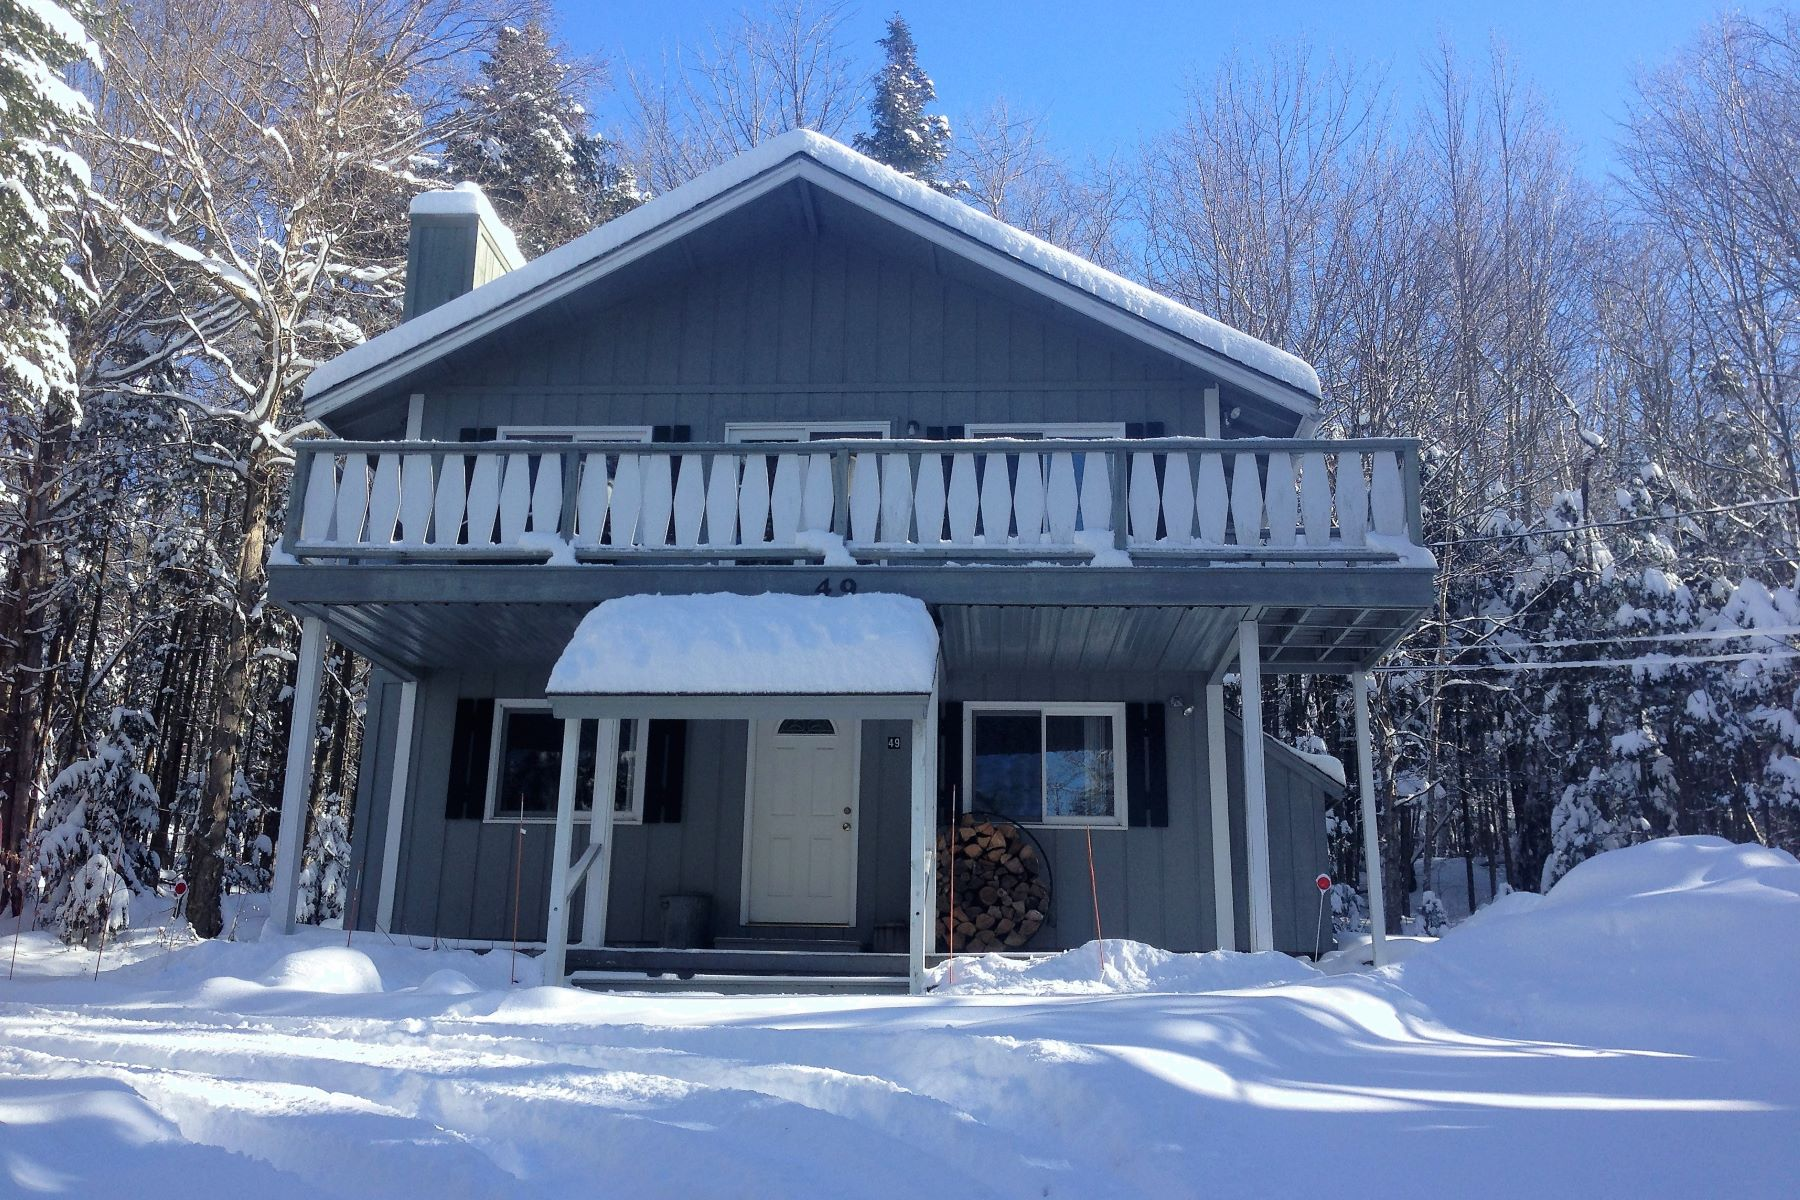 Casa Unifamiliar por un Venta en Close to Lake Raponda 49 Mountain View Rd Wilmington, Vermont, 05363 Estados Unidos